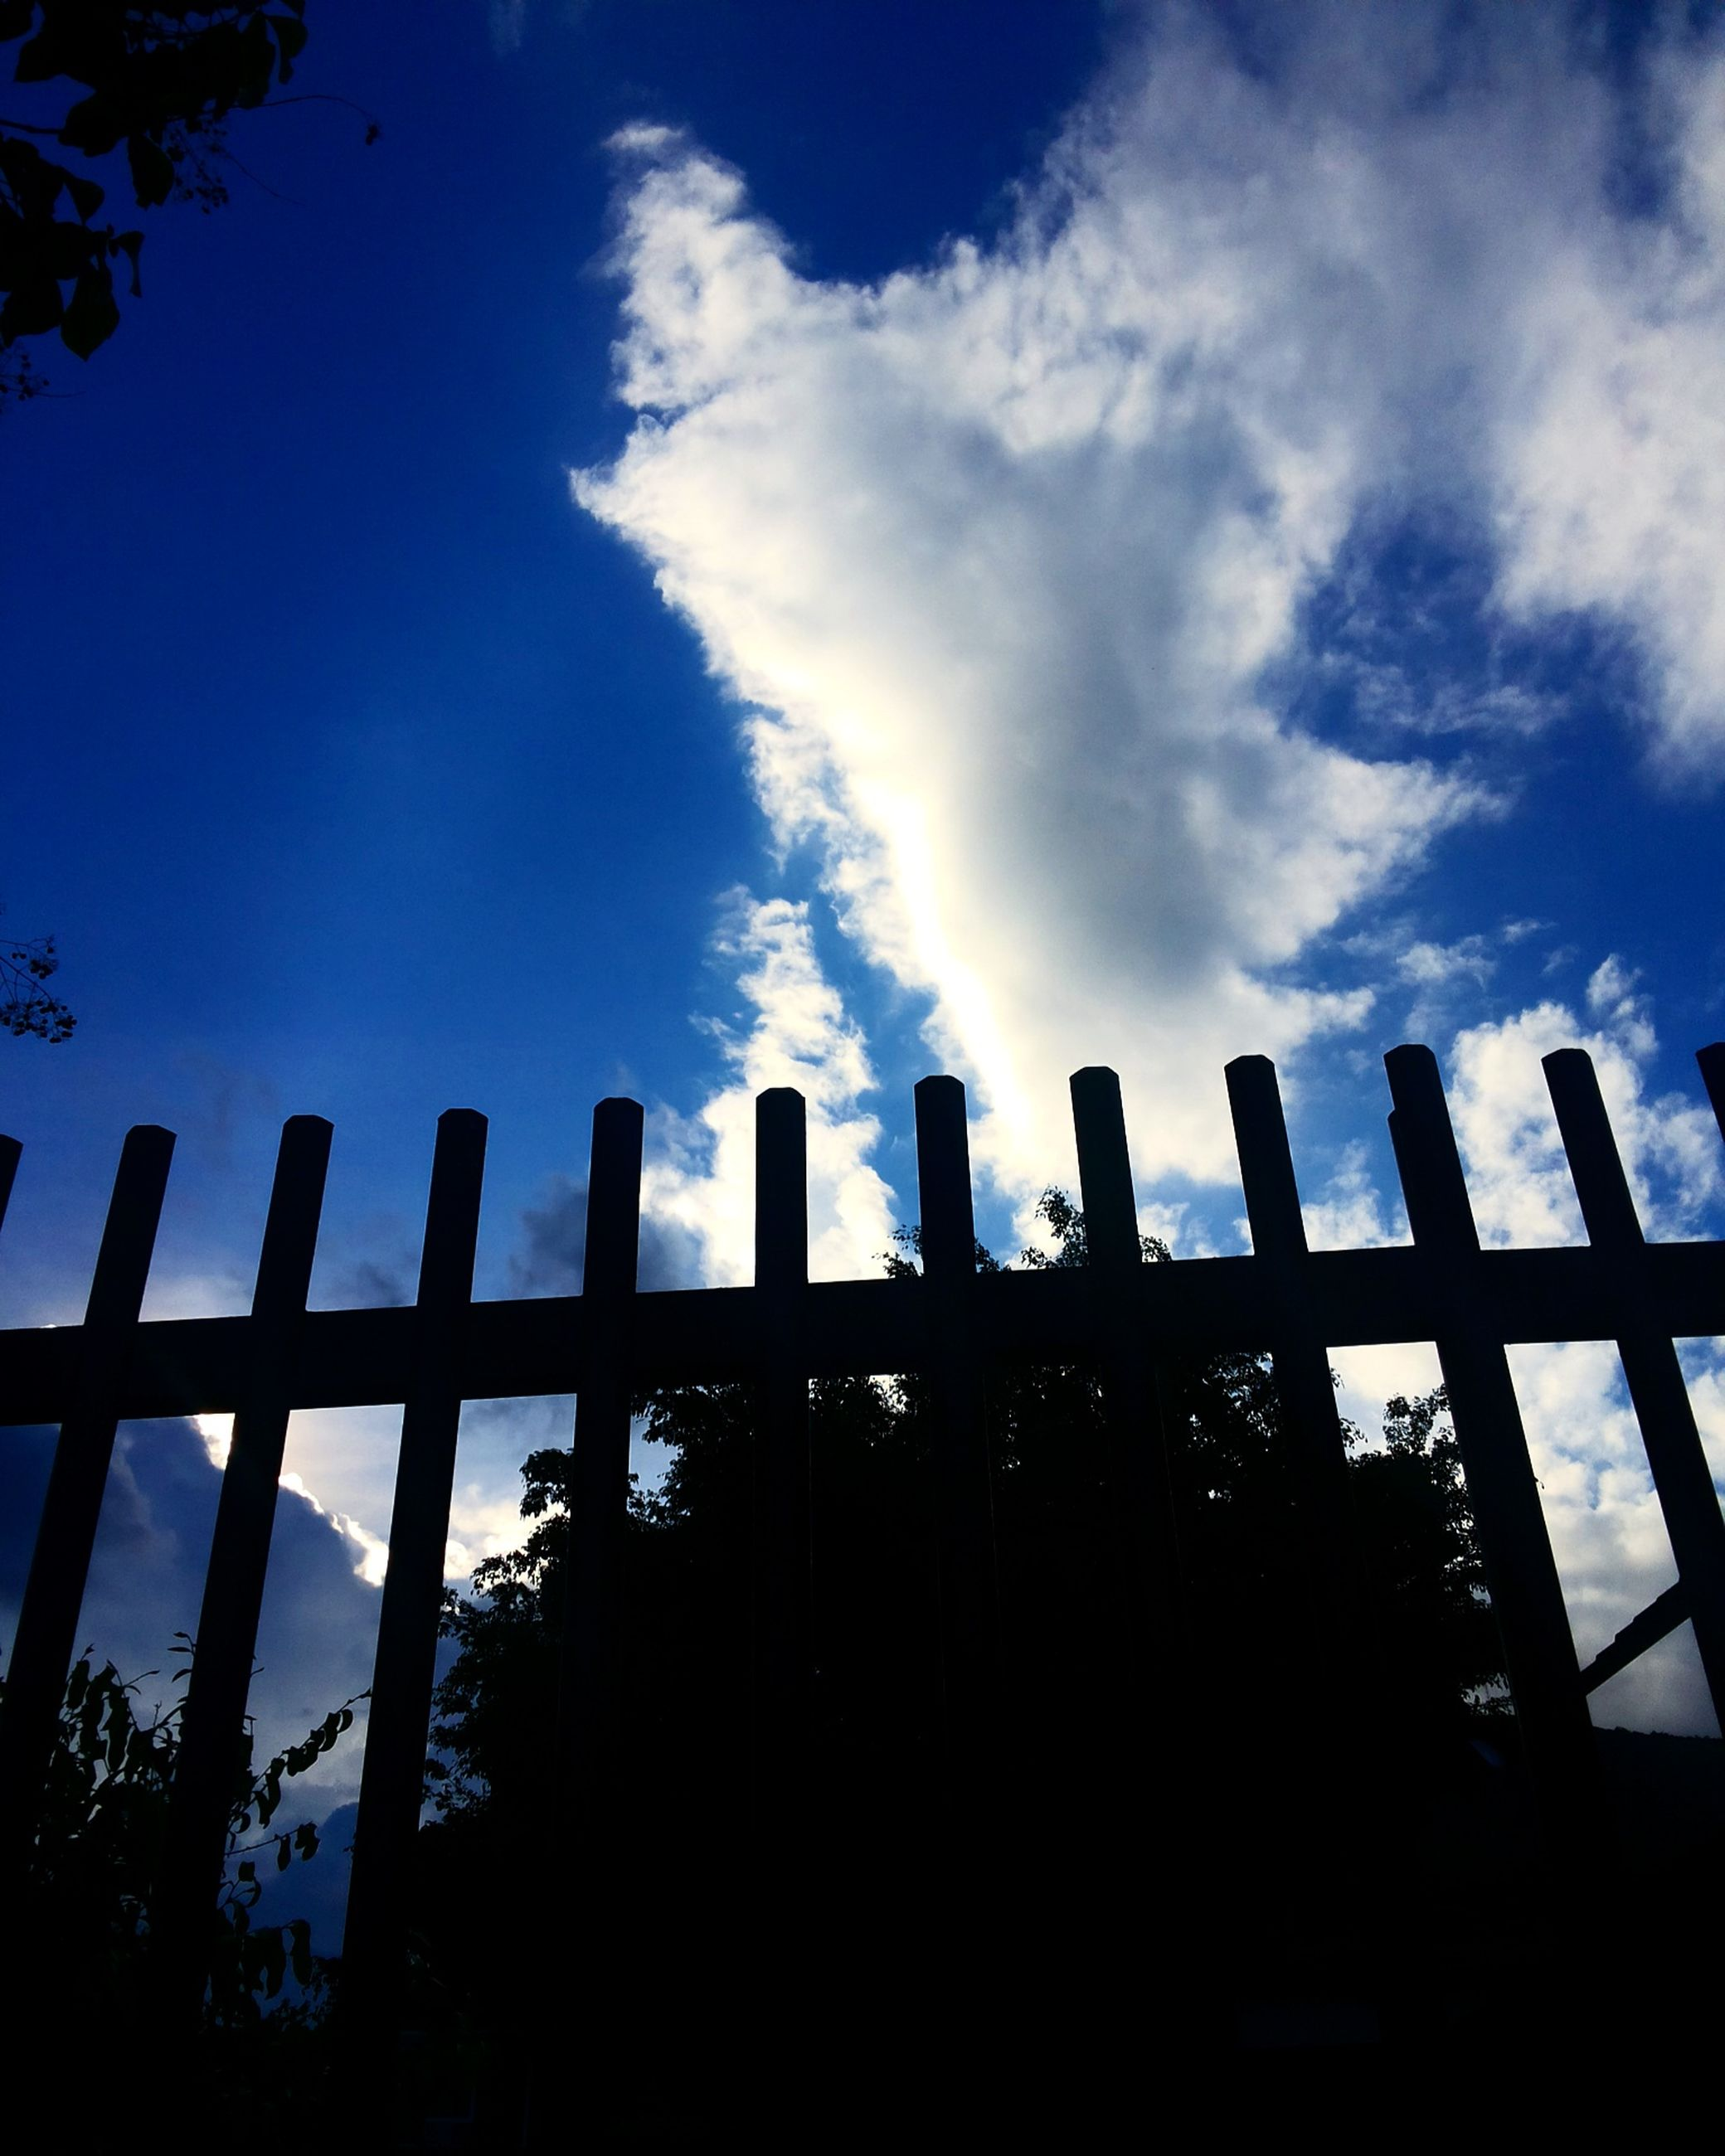 low angle view, silhouette, sky, blue, fence, tranquility, cloud - sky, day, scenics, nature, outdoors, growth, beauty in nature, tranquil scene